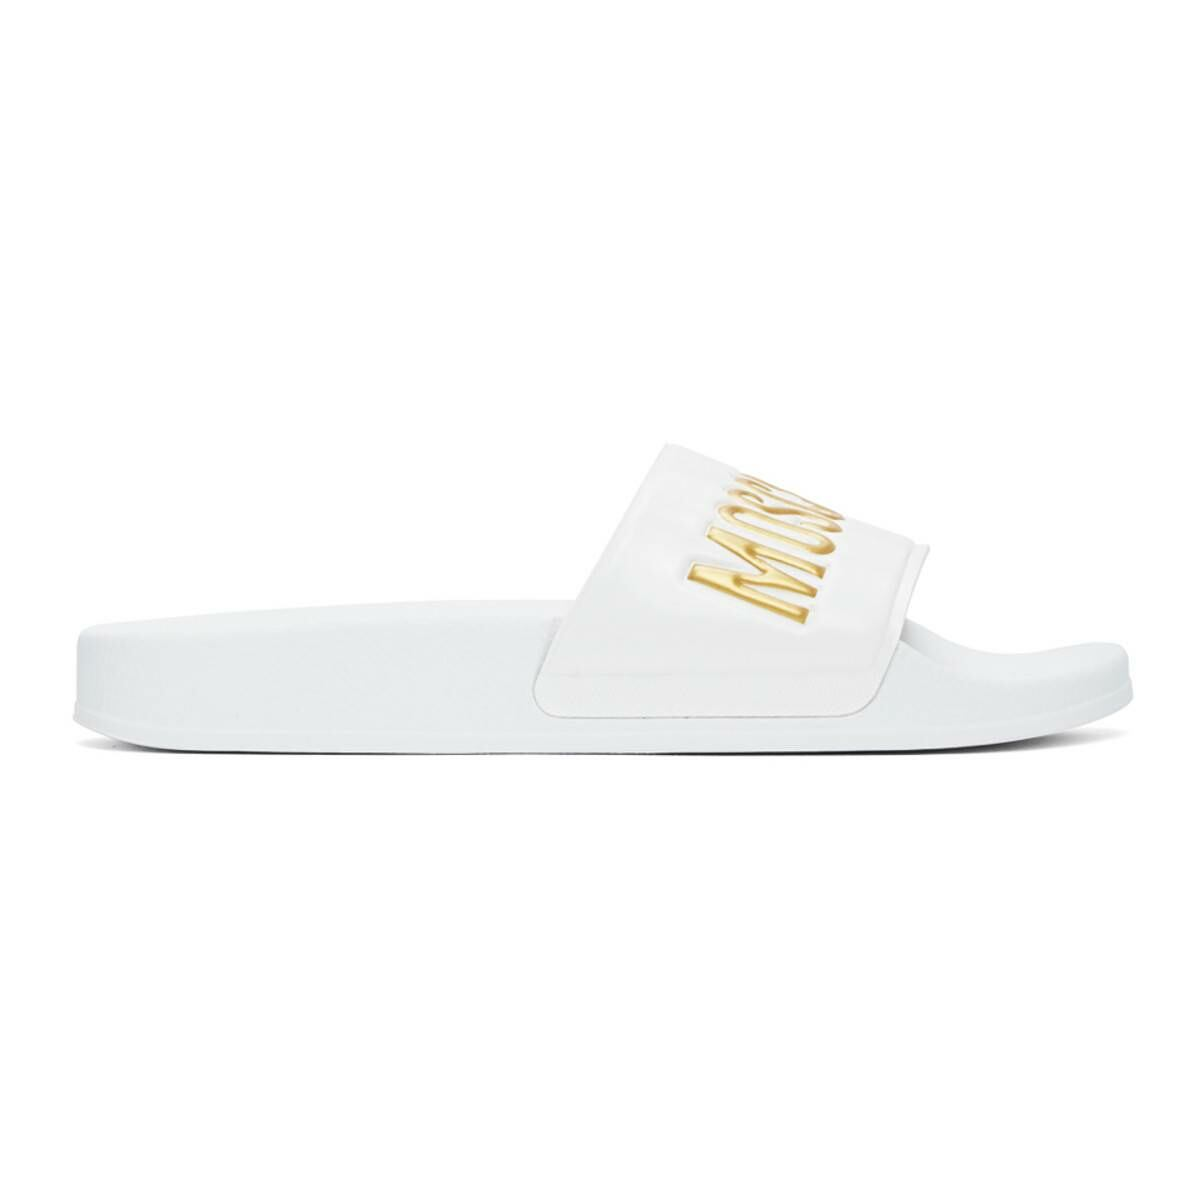 Moschino White and Gold Logo Slides Ssense USA MEN Men SHOES Mens SANDALS